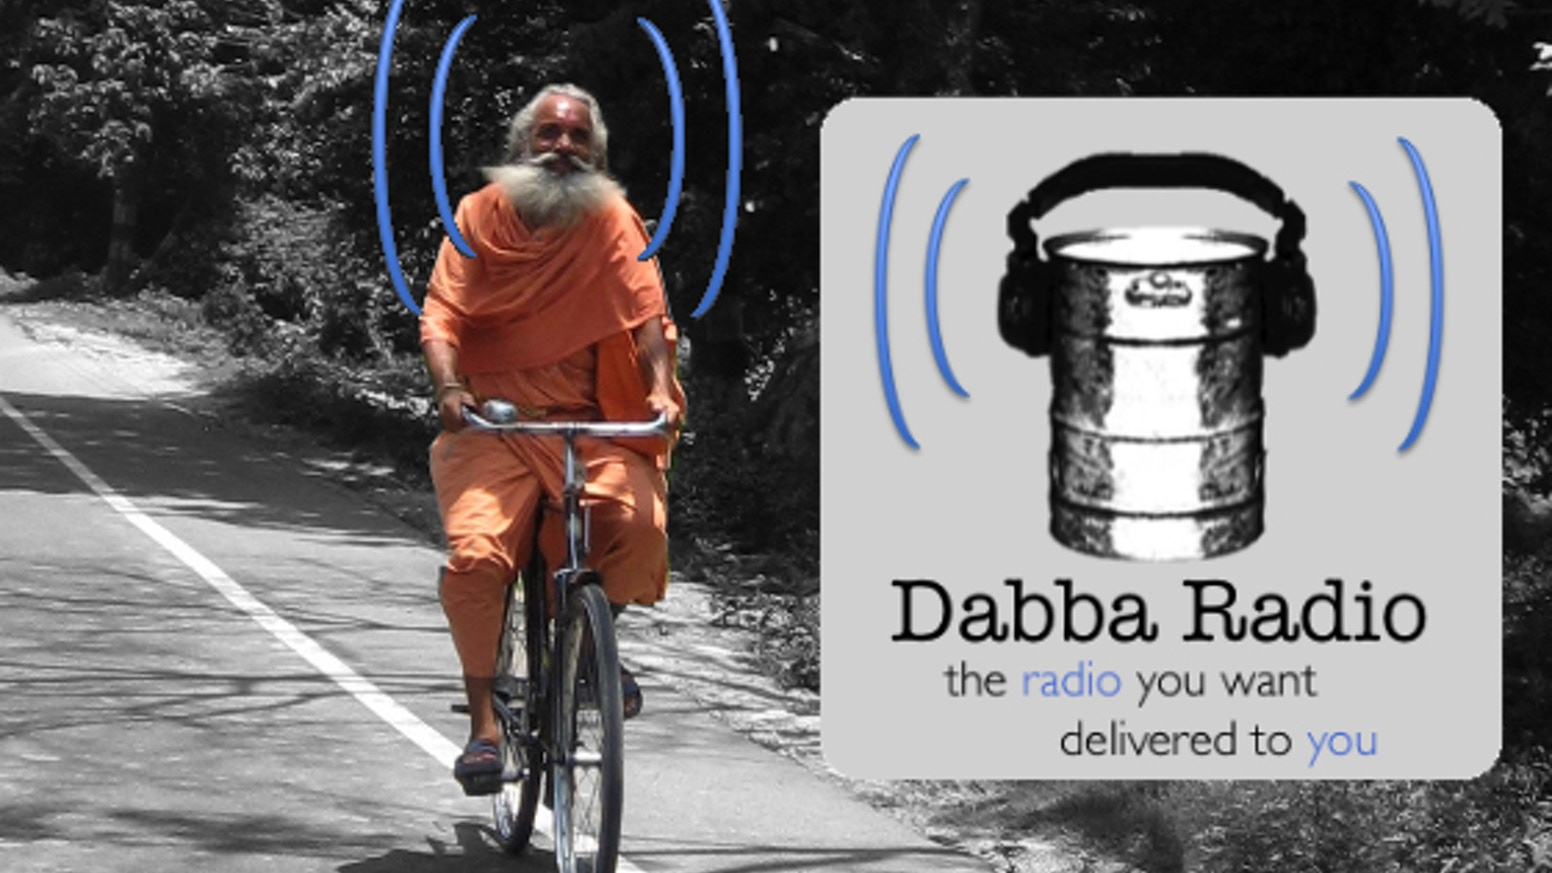 Dabba Radio Creating Free And Open Radio In India By Thane Richard